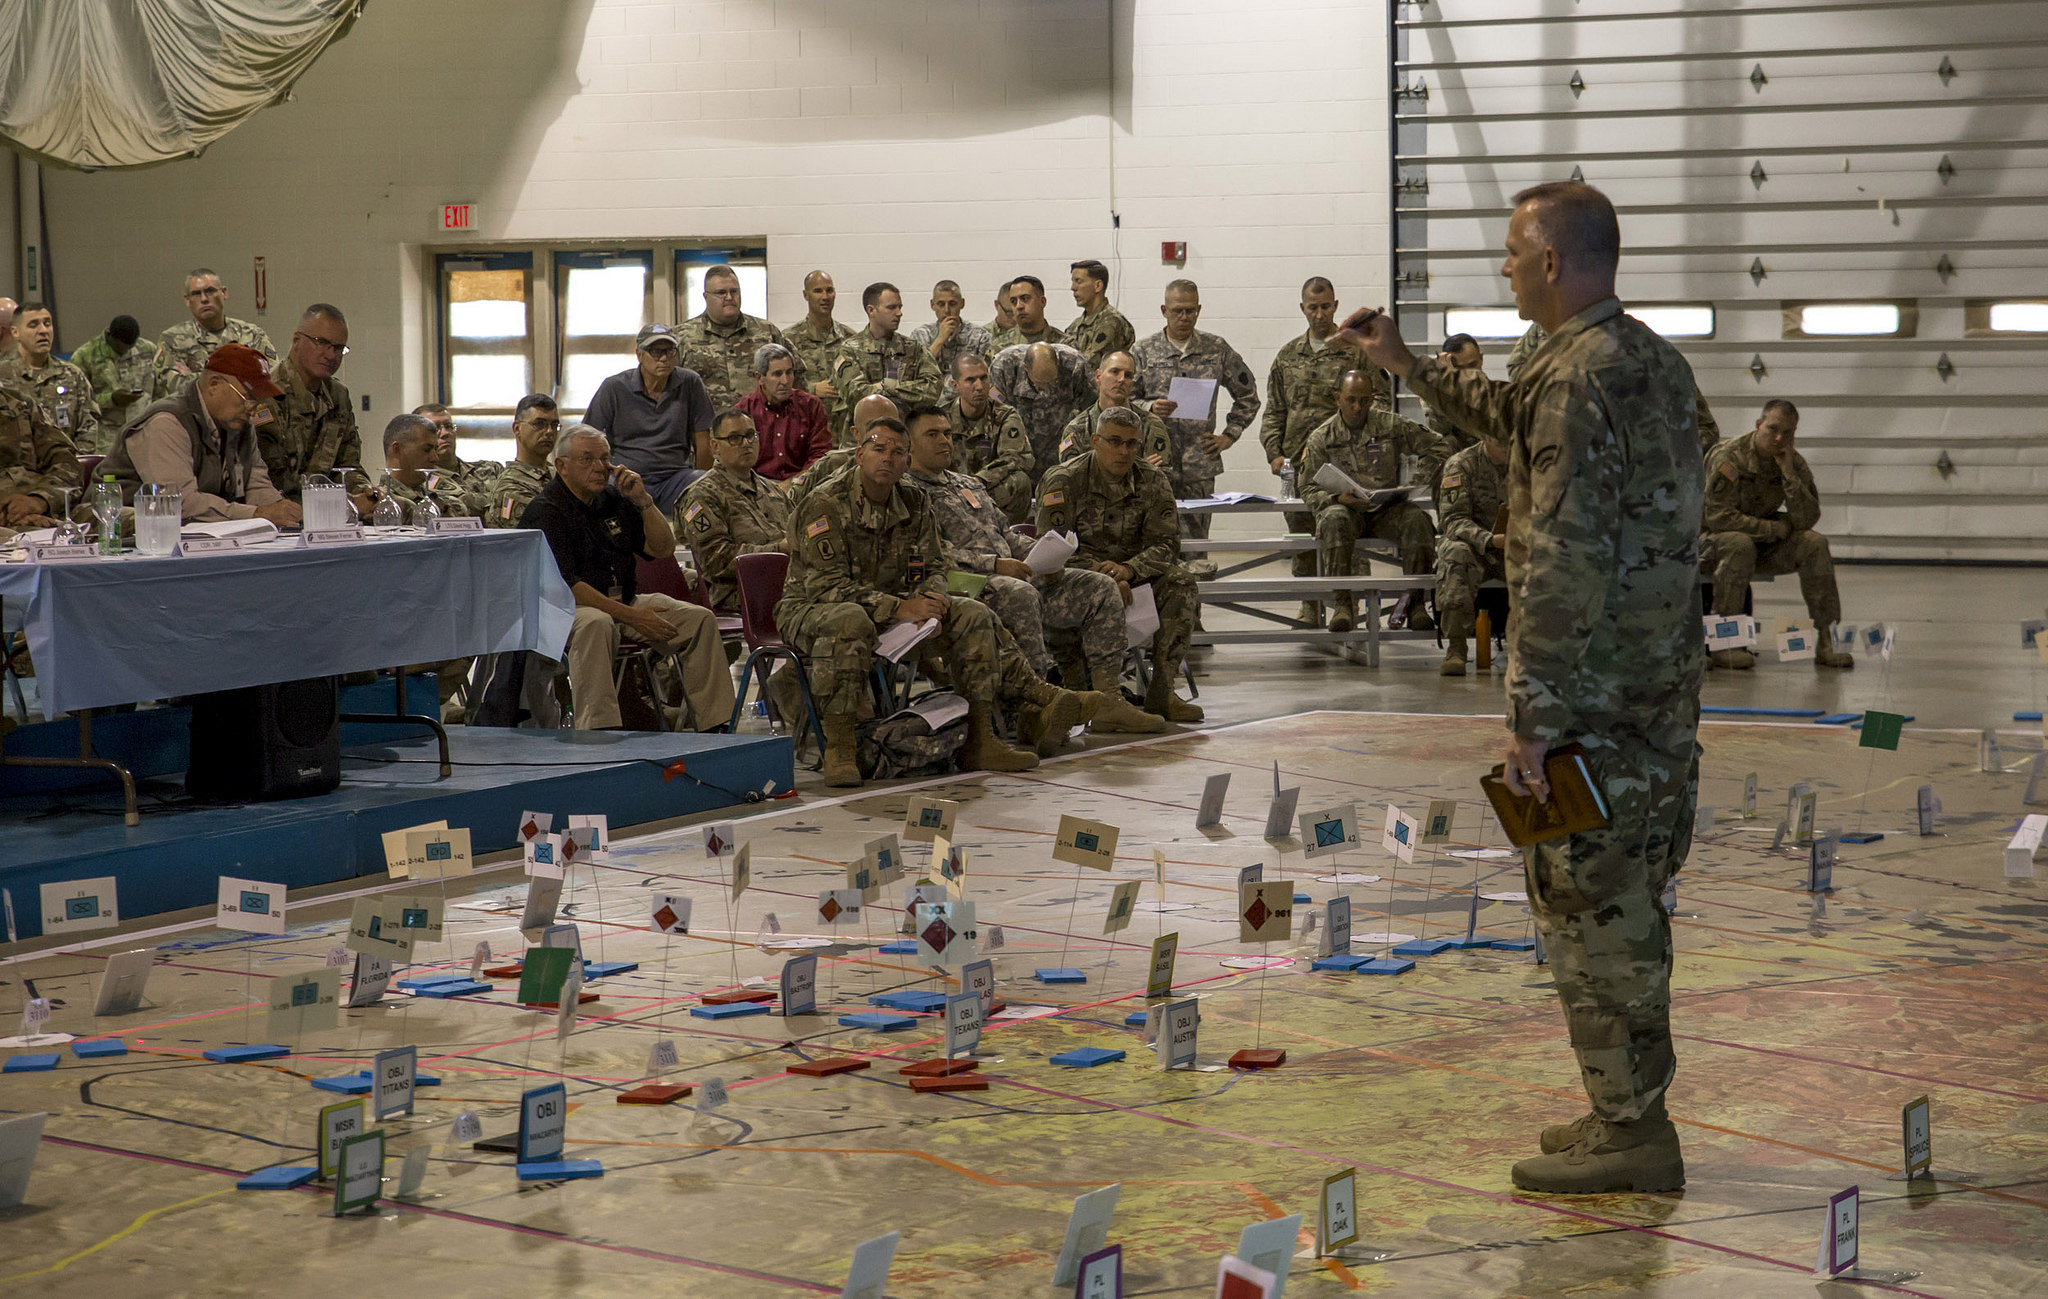 NY Army National Guard Soldiers converge on Fort Drum this